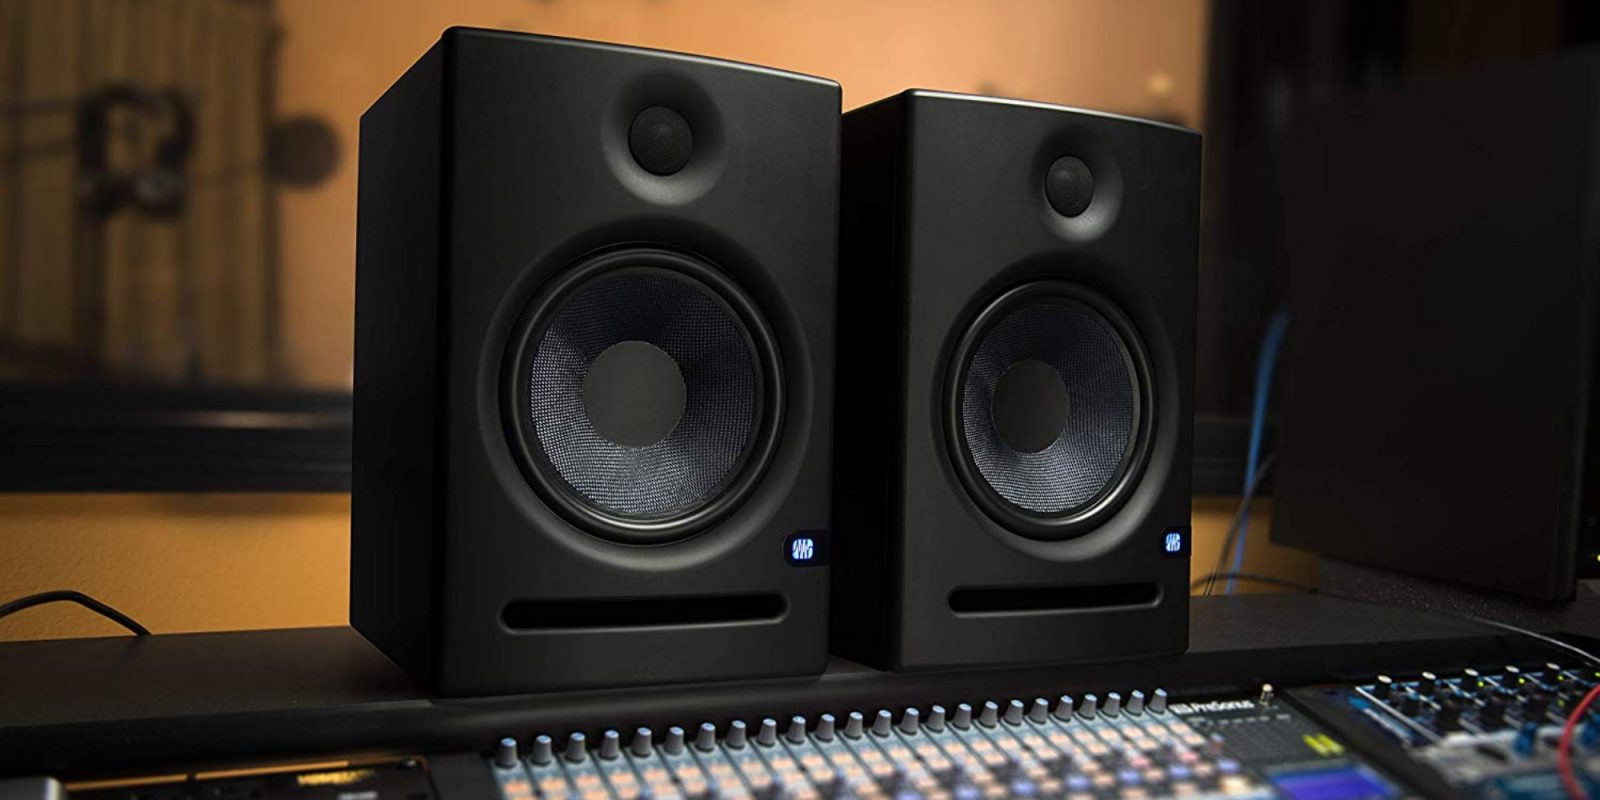 Save 33% on the PreSonus Eris E8 Active Studio Monitor at a new low of $130